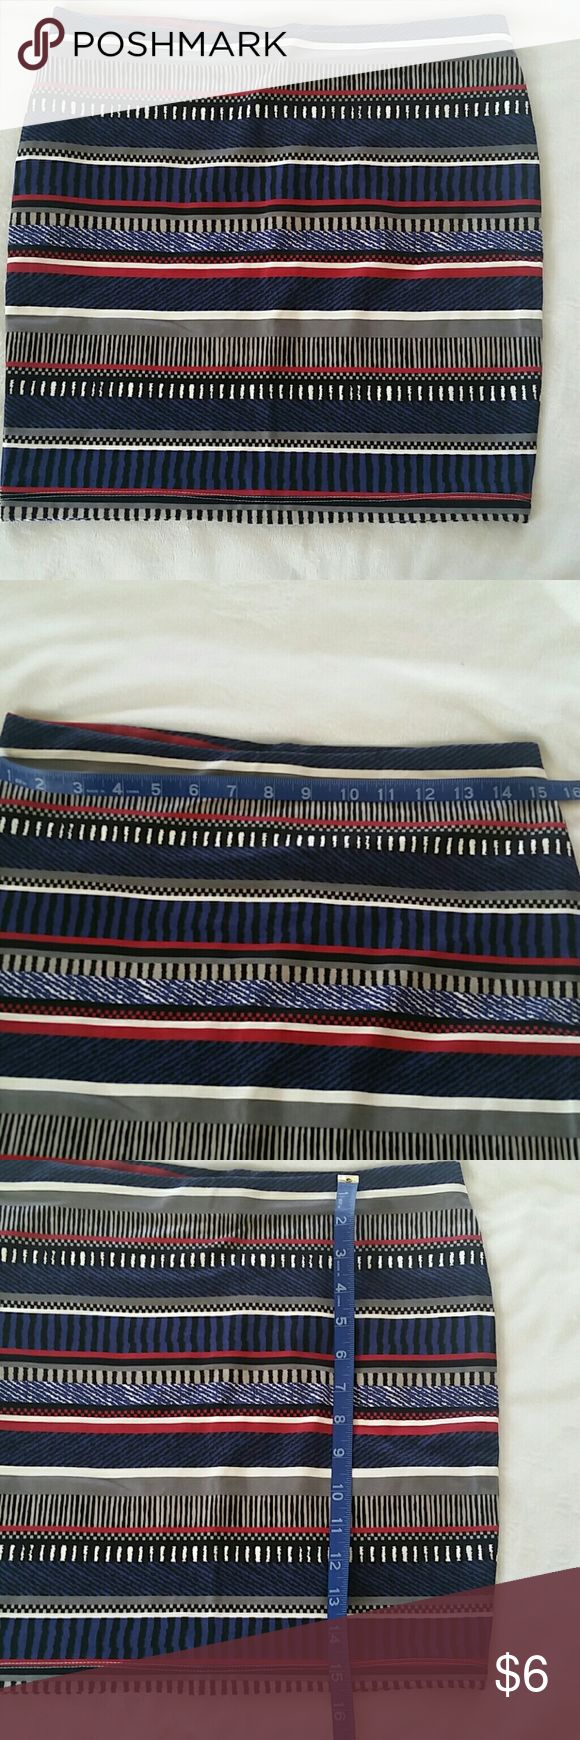 "Forever 21 Striped Color Block Body Con Skirt Forever 21 Striped Color Block Body Con Skirt. Skirt is approximately 15.5"" long and the waist measures about 15"" across. Multi-colored including navy blue, black, white, gray, and red. Forever 21 Skirts Mini"